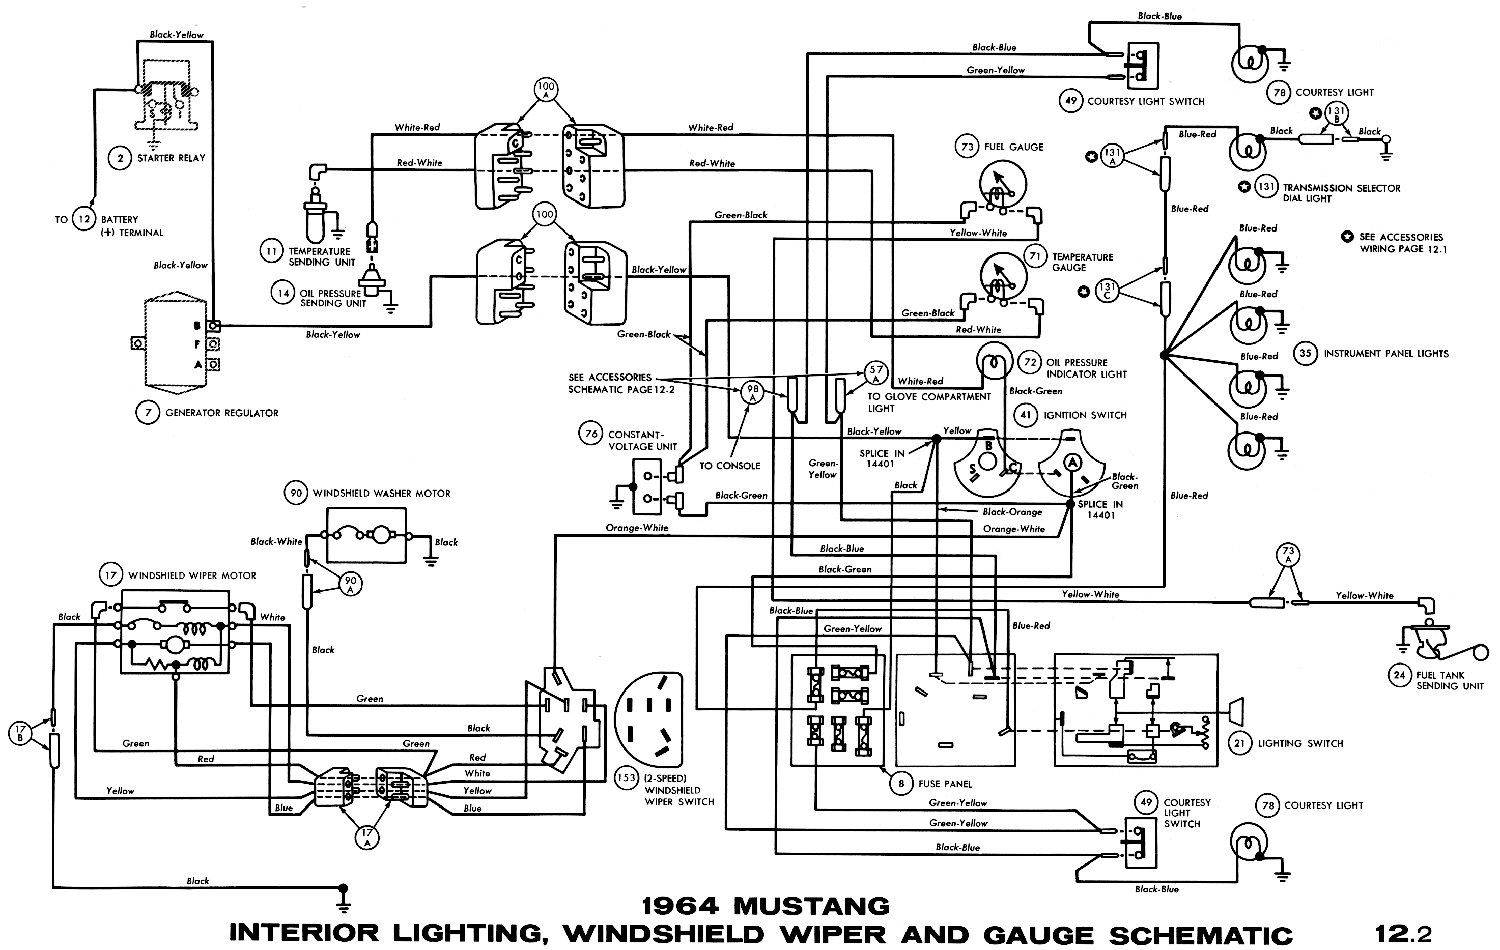 65 Mustang Radio Wiring Diagrams Free Download Diagram Good 1st 1964 Fairlane Manual Rh 19 12 14 Jacobwinterstein Com 93